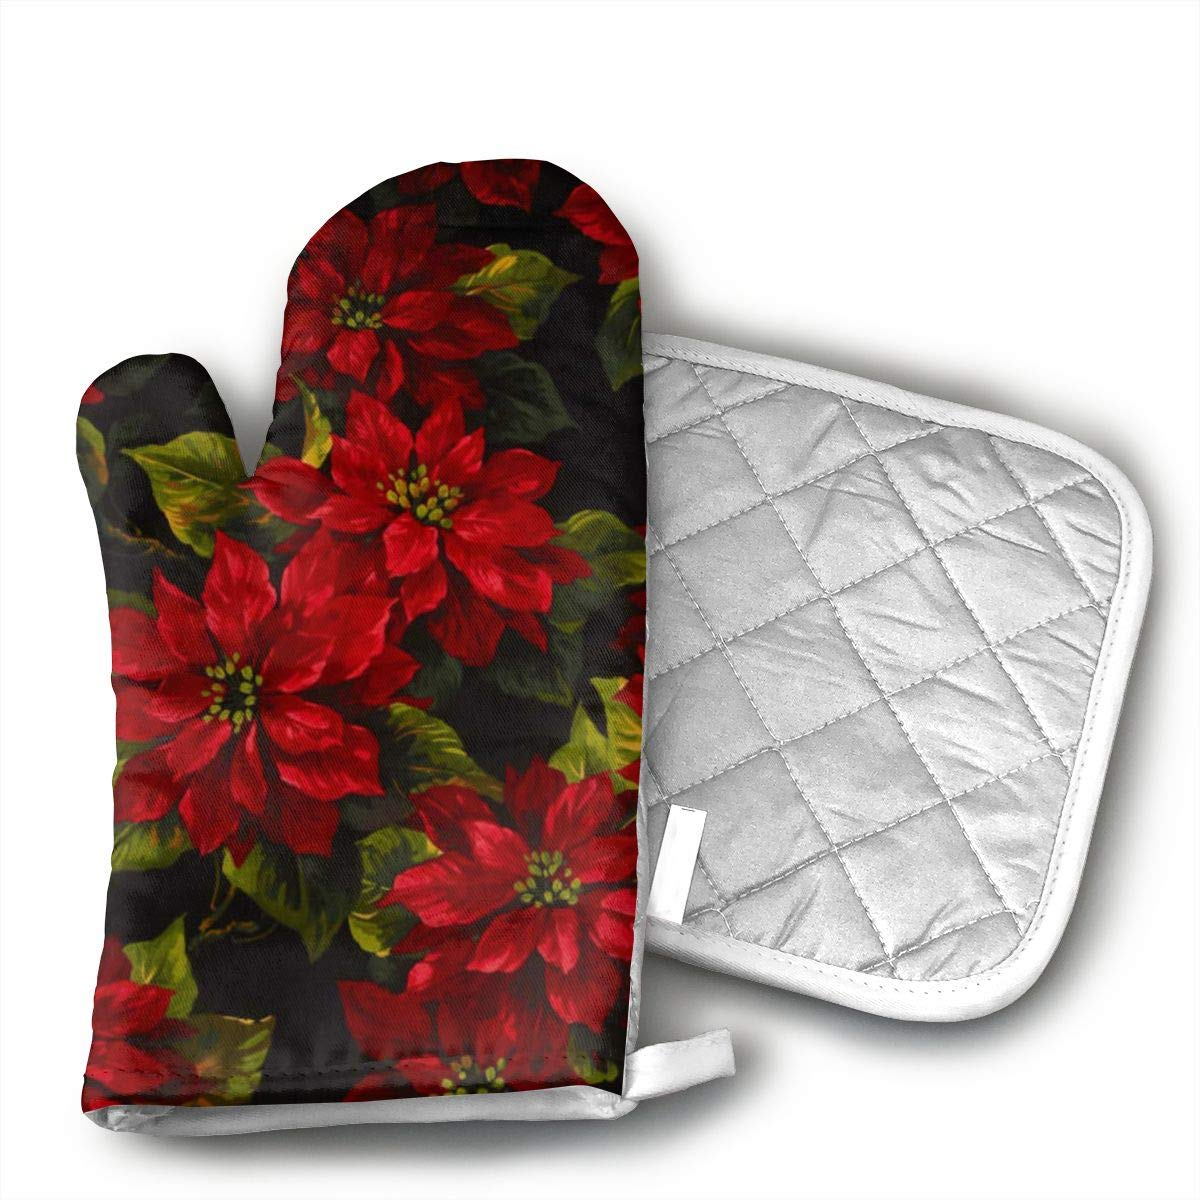 HGUIDHG Michael Miller Scarlet Poinsetta Oven Mitts+Insulated Square Mat,Heat Resistant Kitchen Gloves Soft Insulated Deep Pockets, Non-Slip Handles